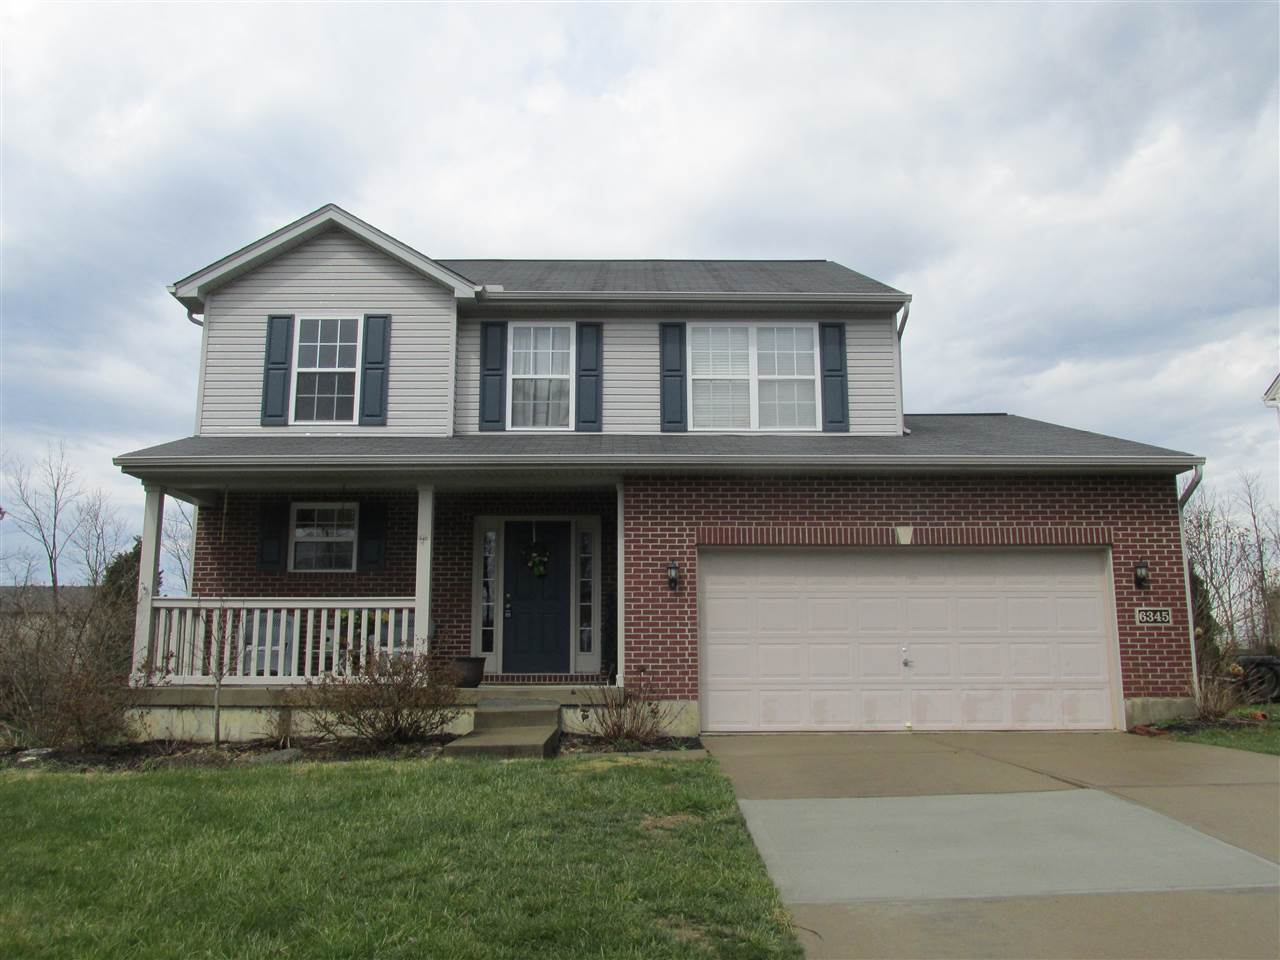 Photo 1 for 6345 Markham Ct Independence, KY 41051